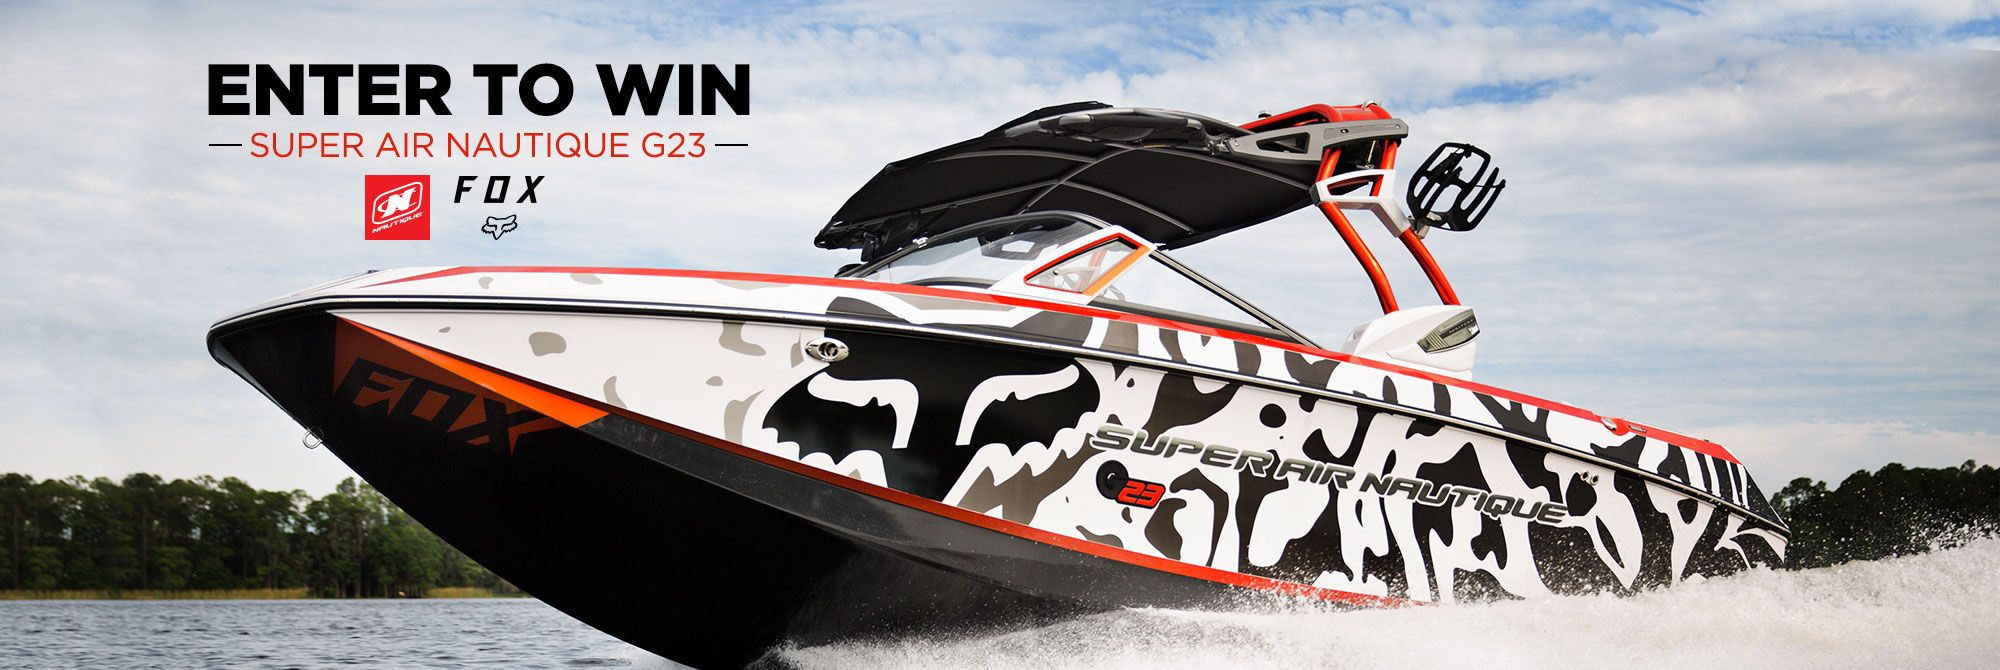 Win a custom boat on Fox Nautical Super Air Nautique G23